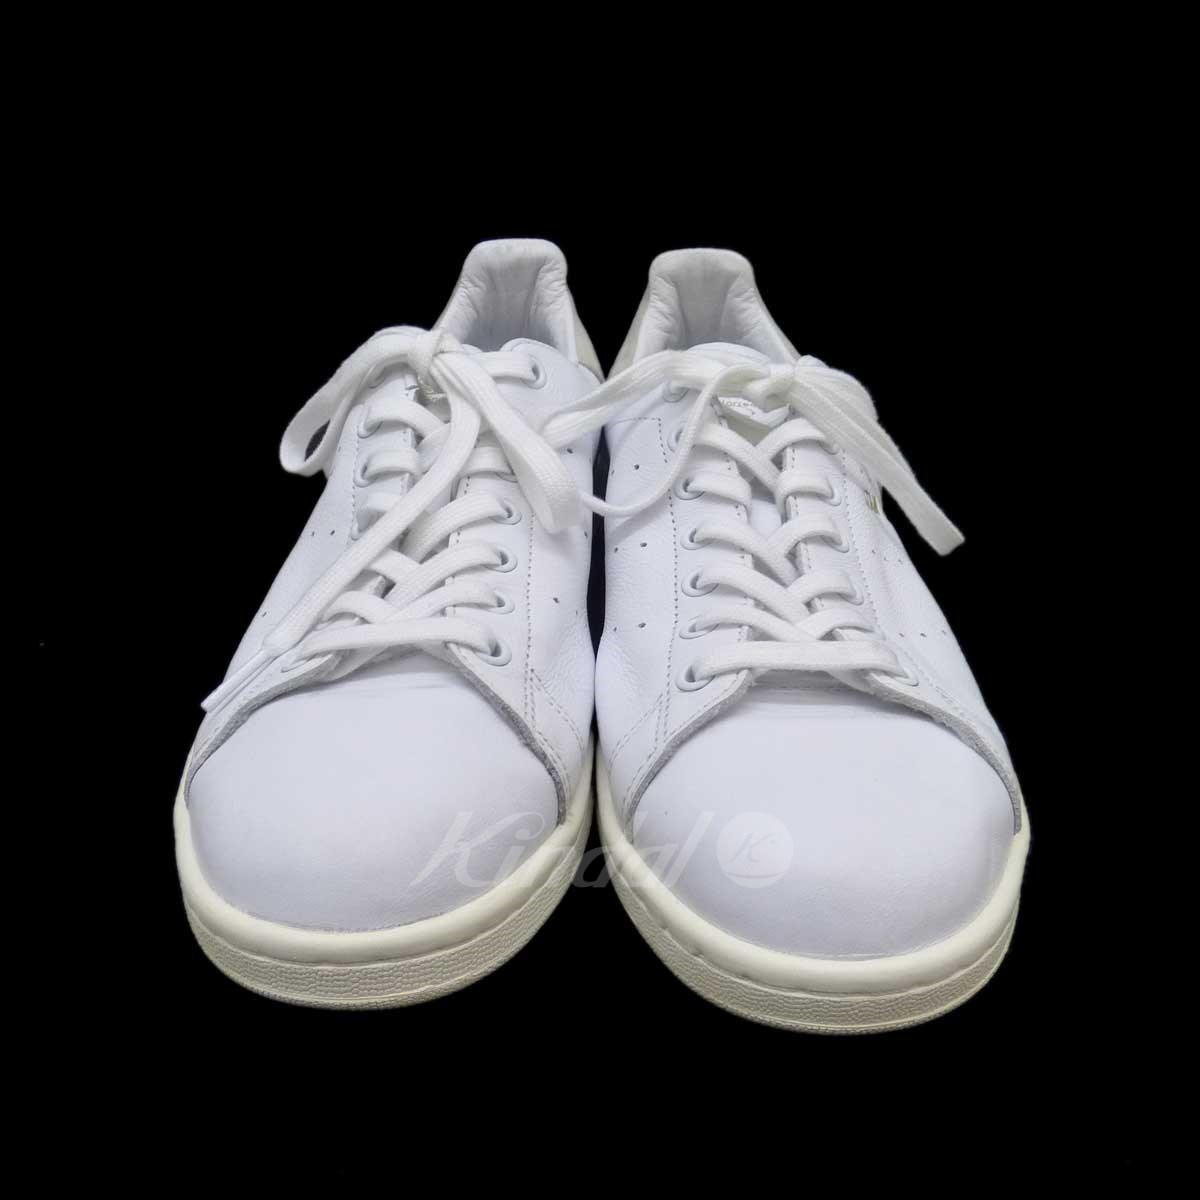 adidas STAN SMITH sneakers white size: 28. 5 (Adidas)